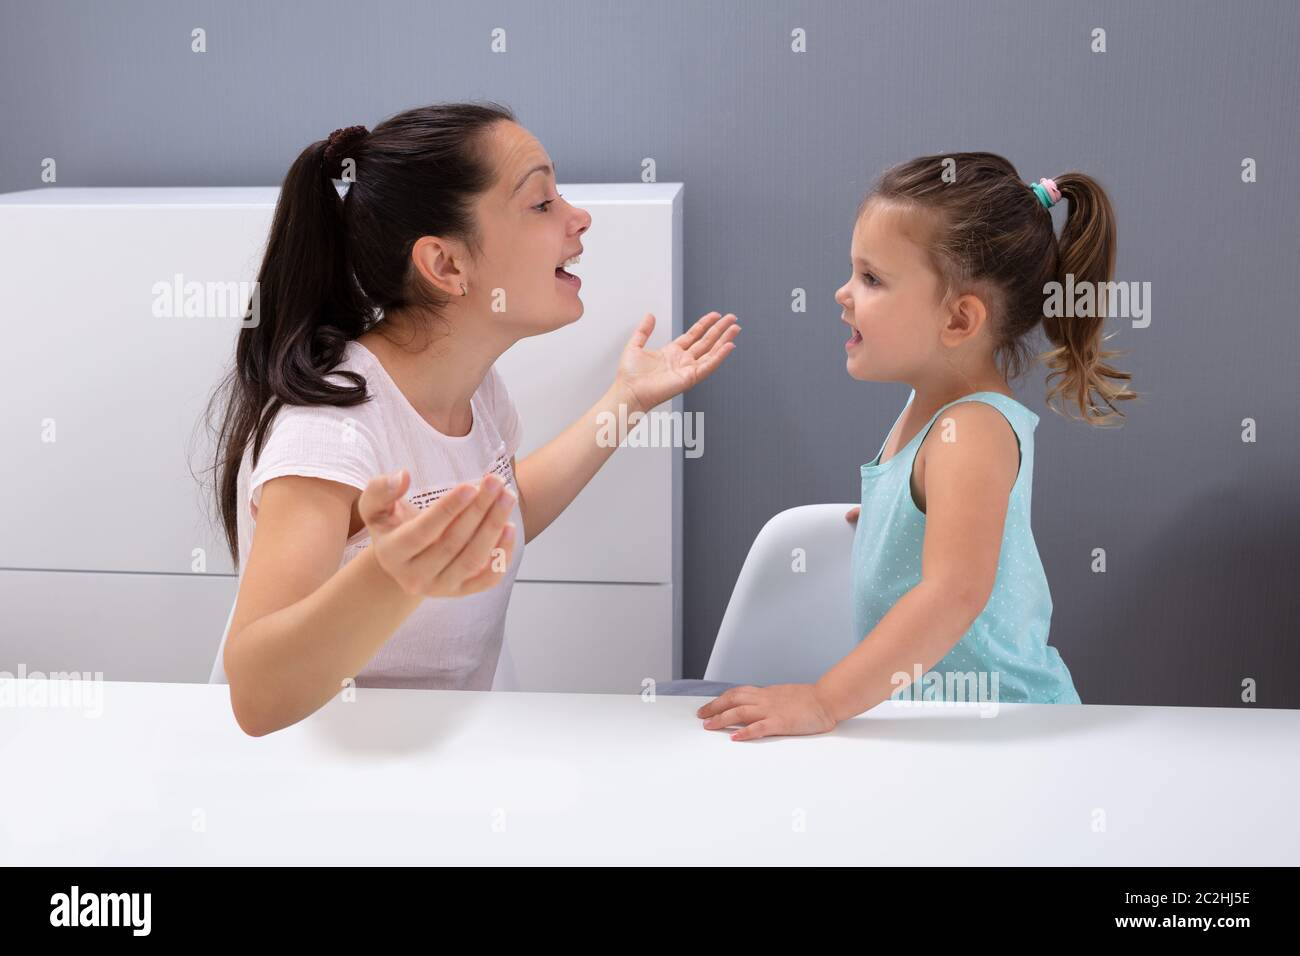 An Attractive Young Woman Helps The Girl How To Pronounce The